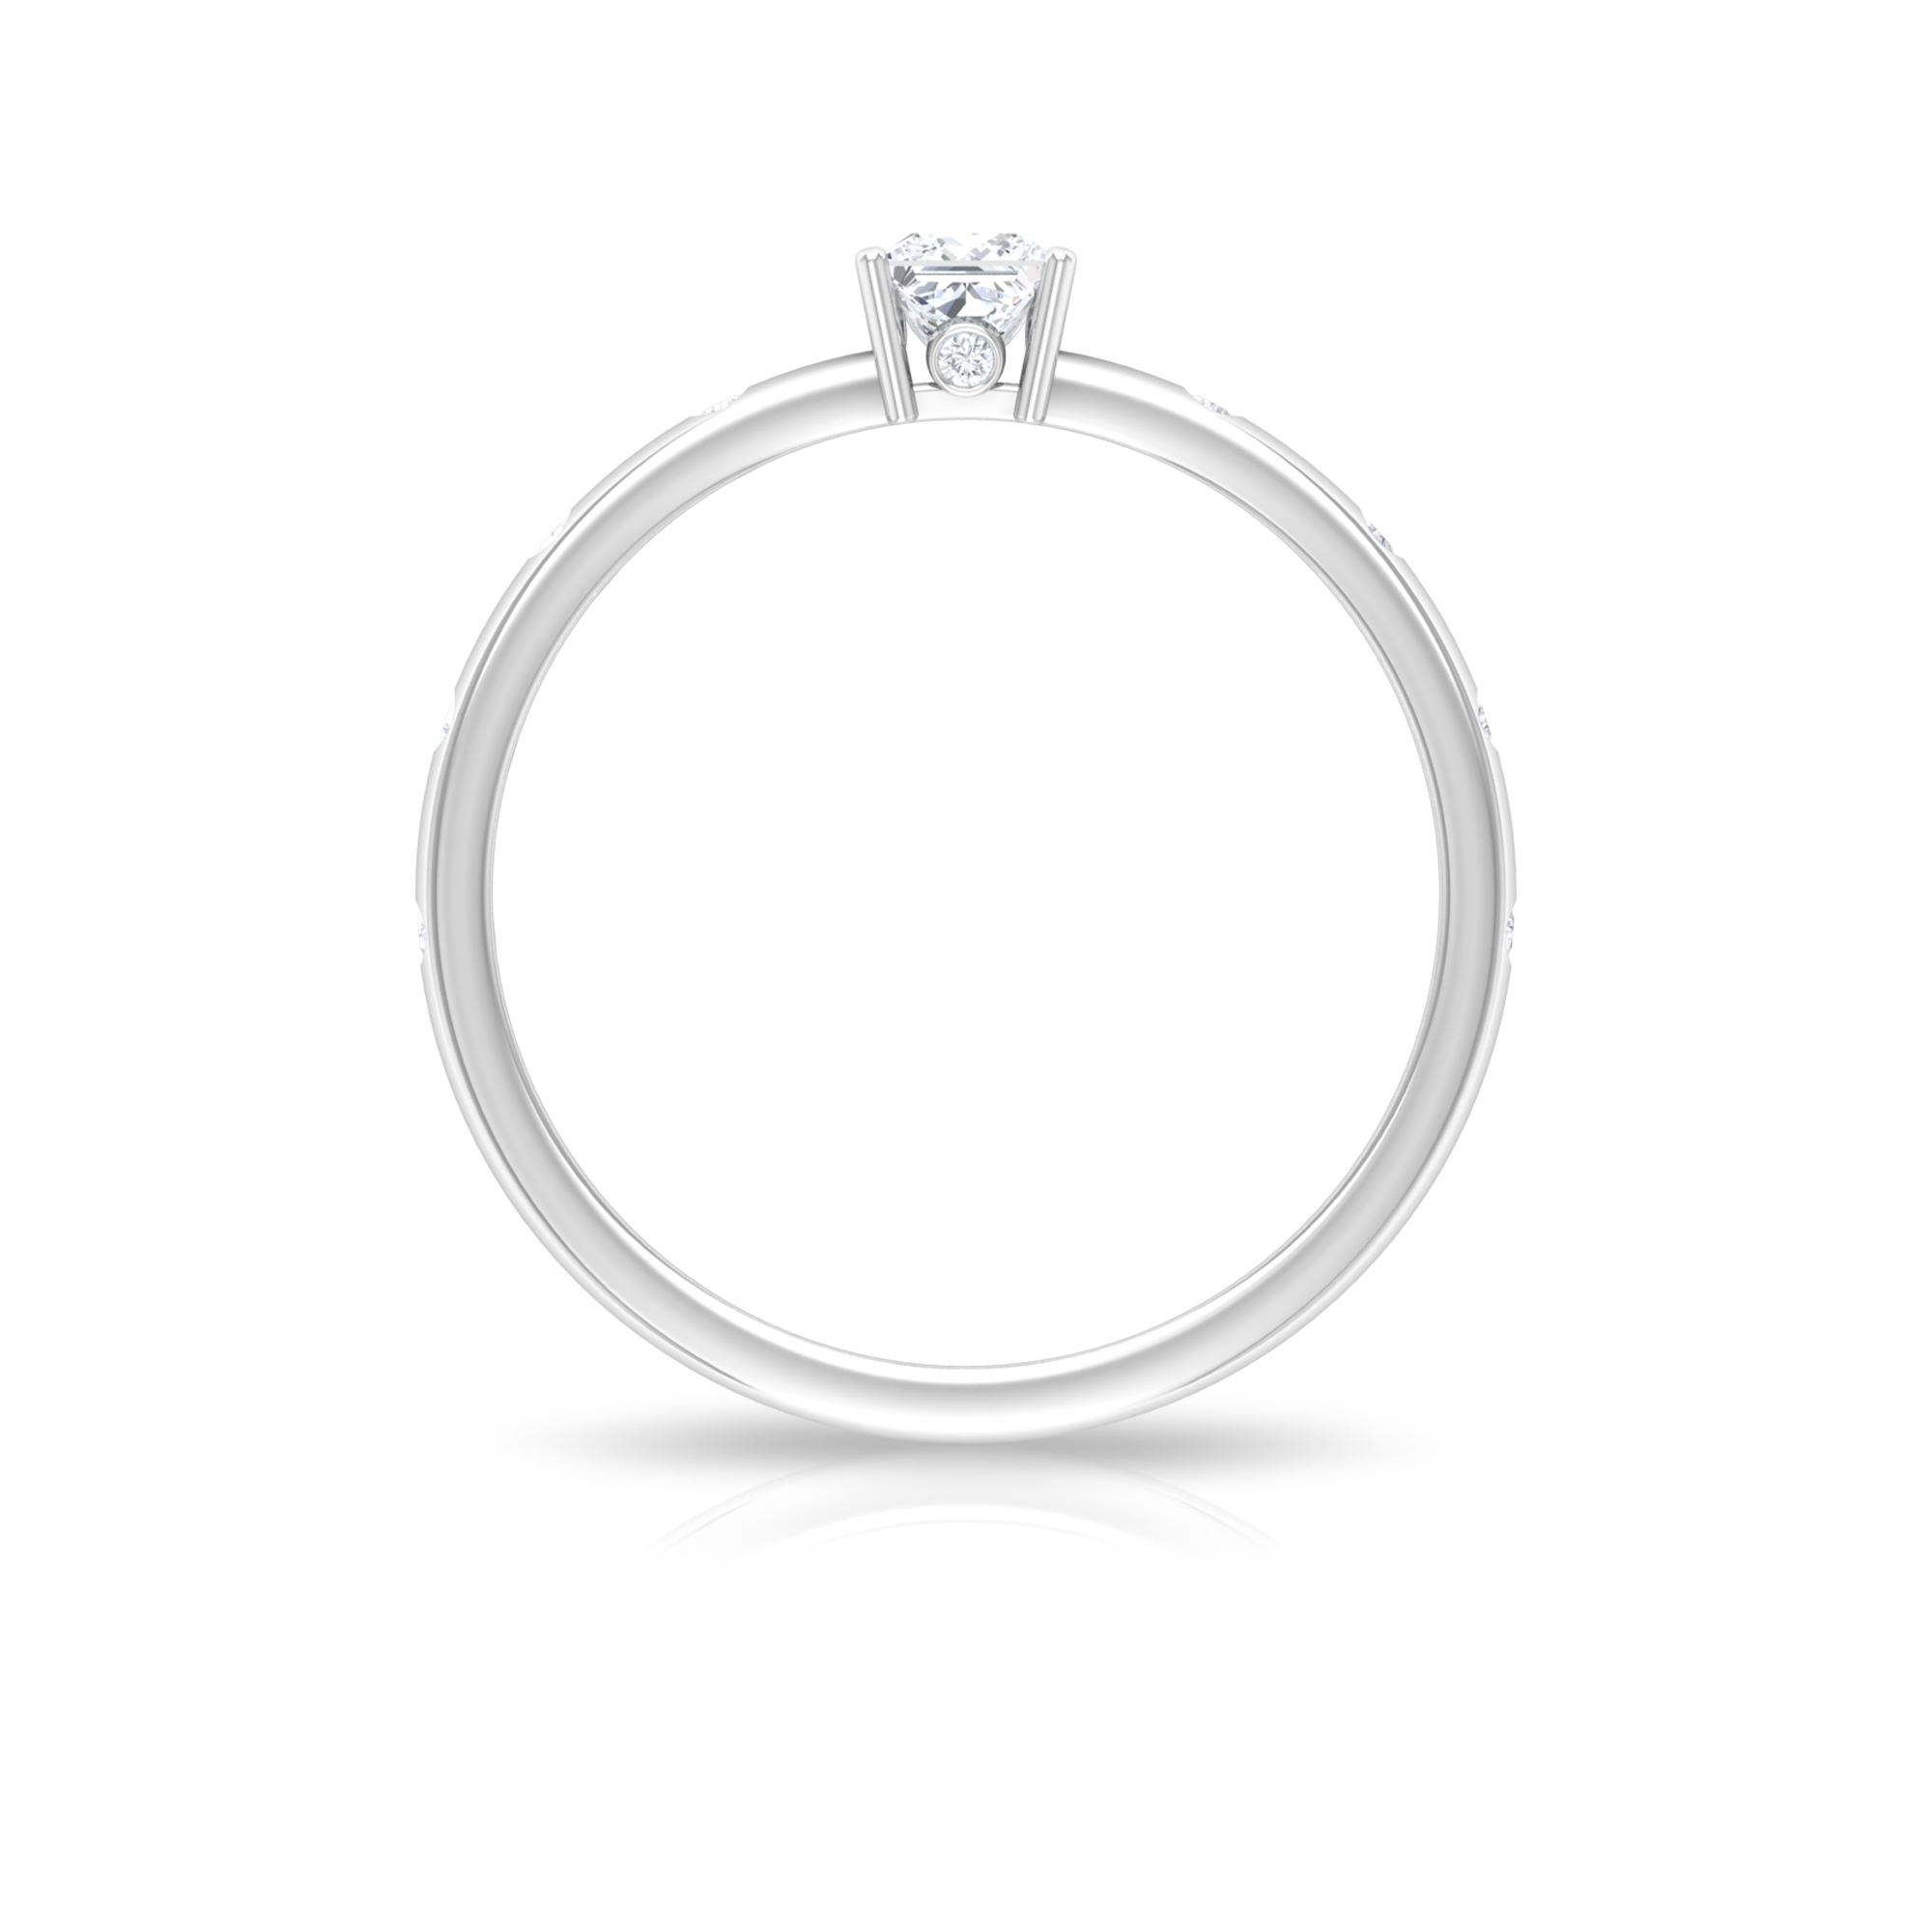 1/4 CT Princess Cut Solitaire and Surprise Diamond Ring with Sleek Accent Side Stones